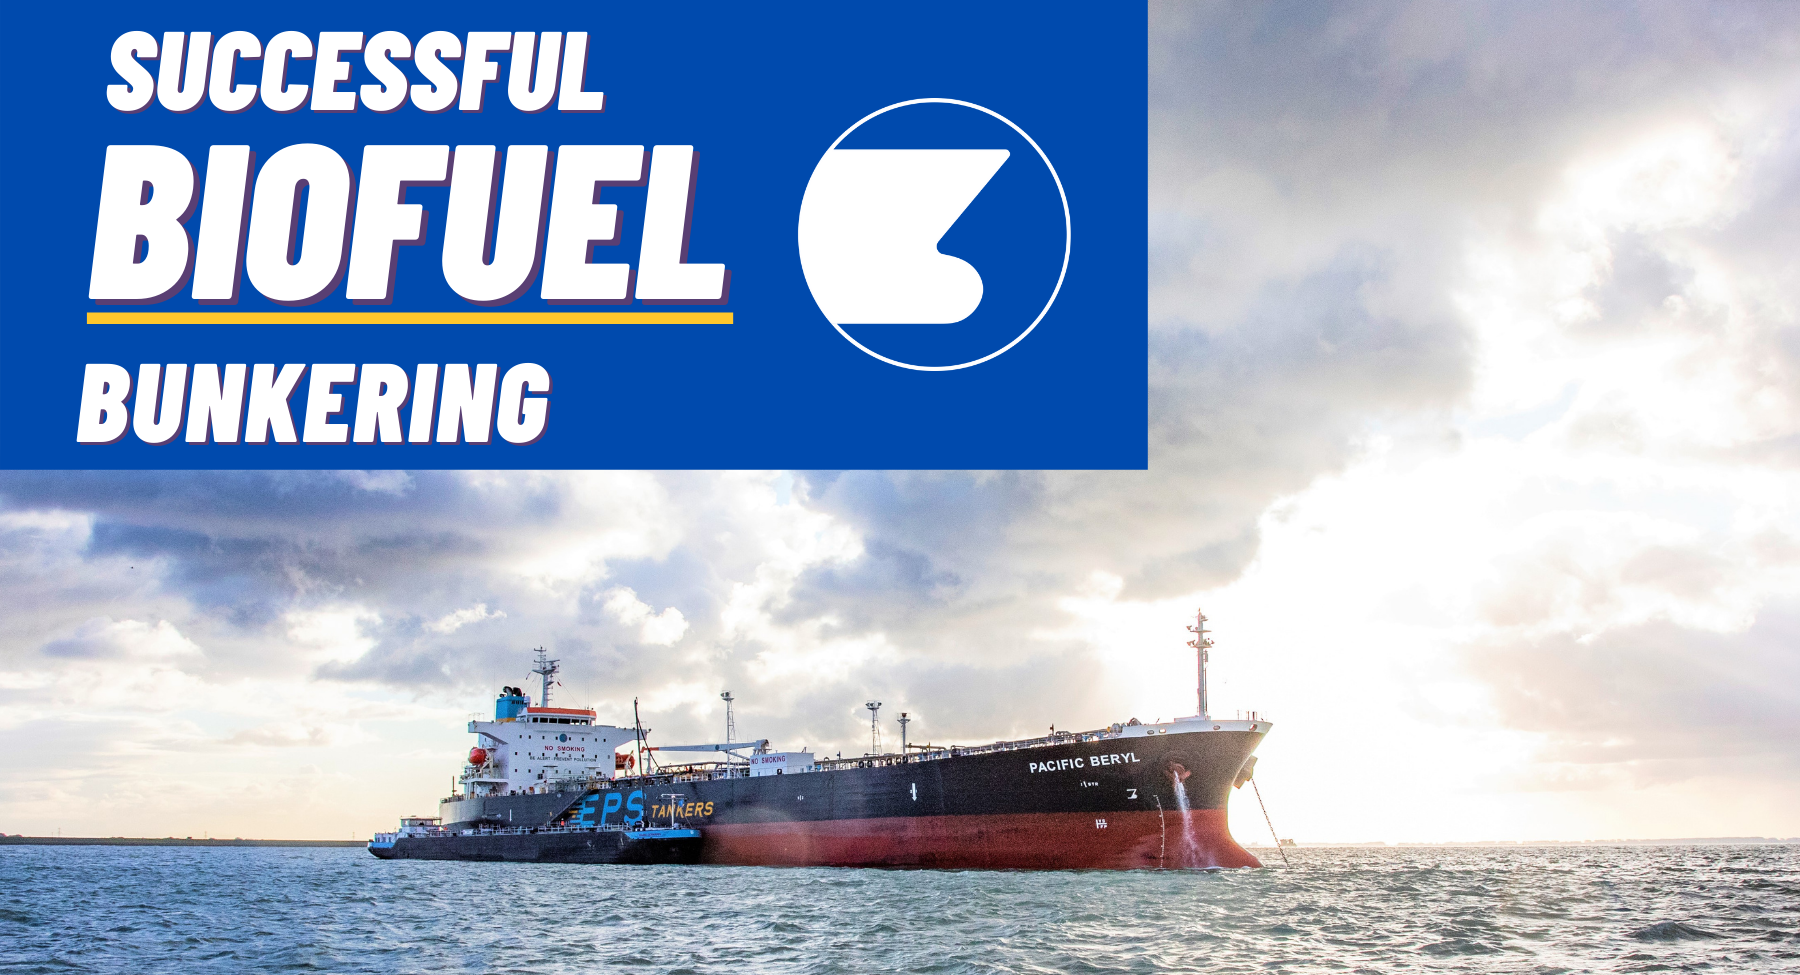 EPS collaborates with GoodFuels for marine biofuel bunker trial